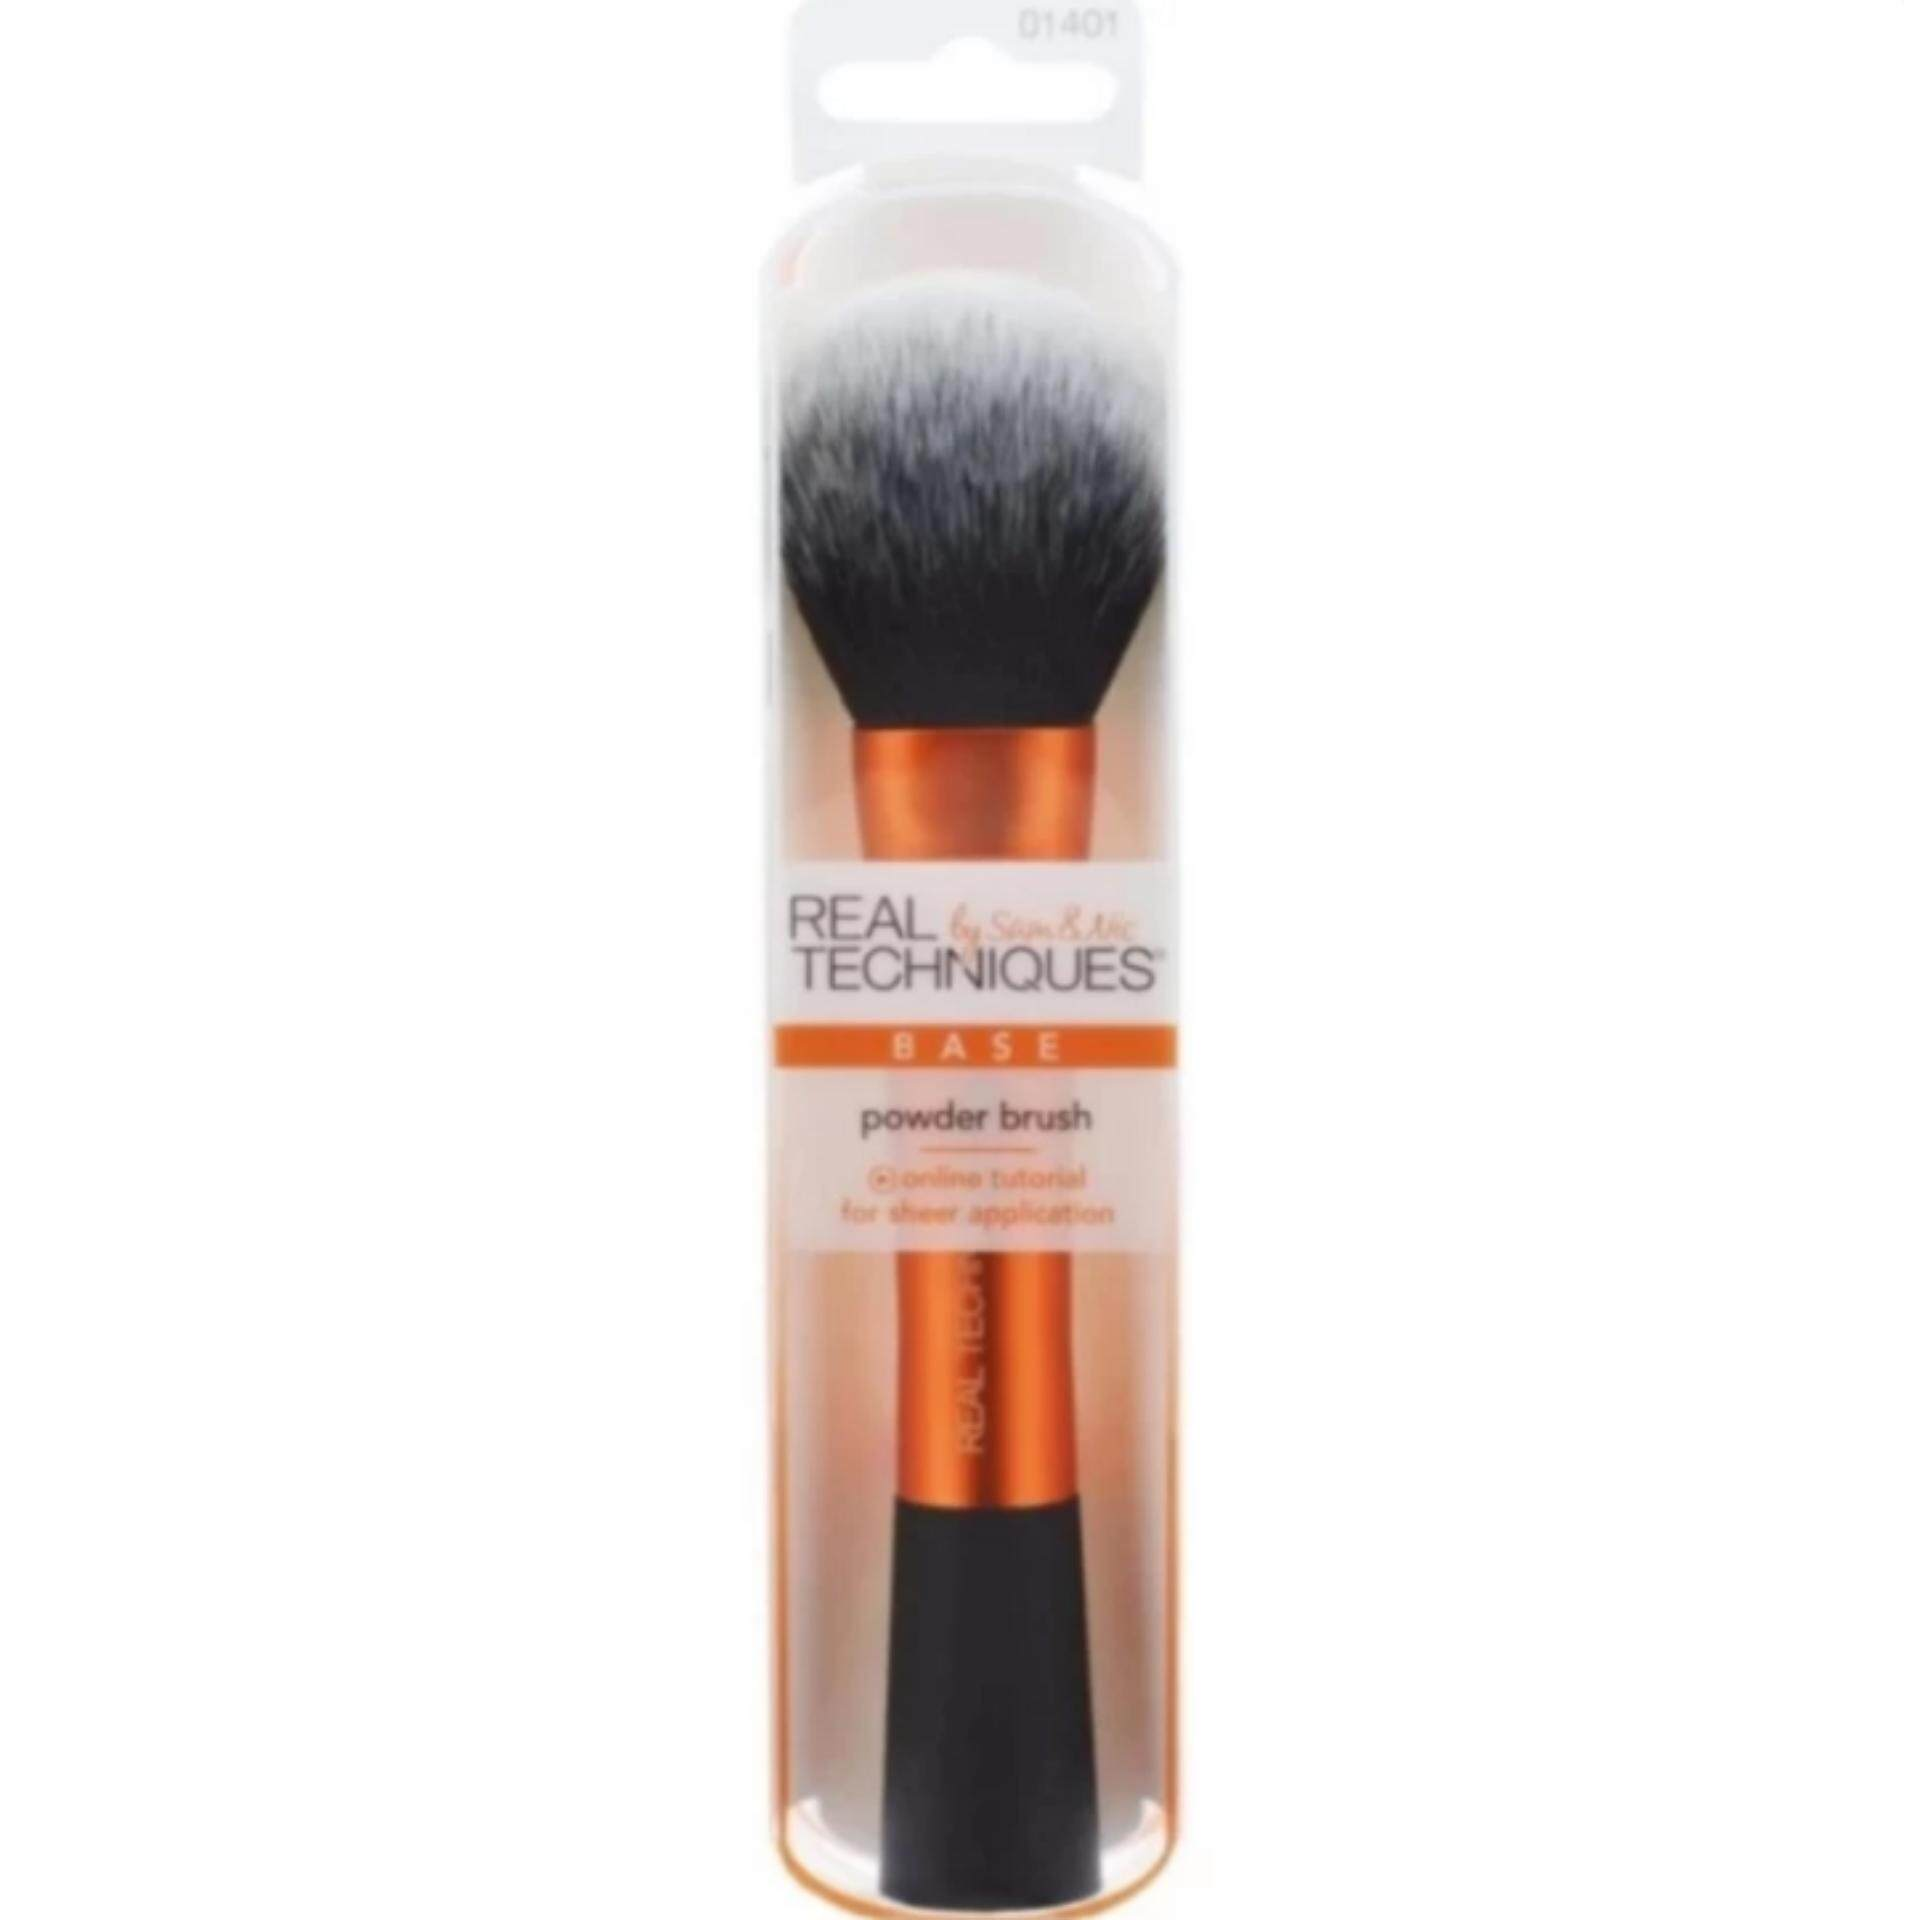 Real Techniques Powder Brush (สีส้ม)